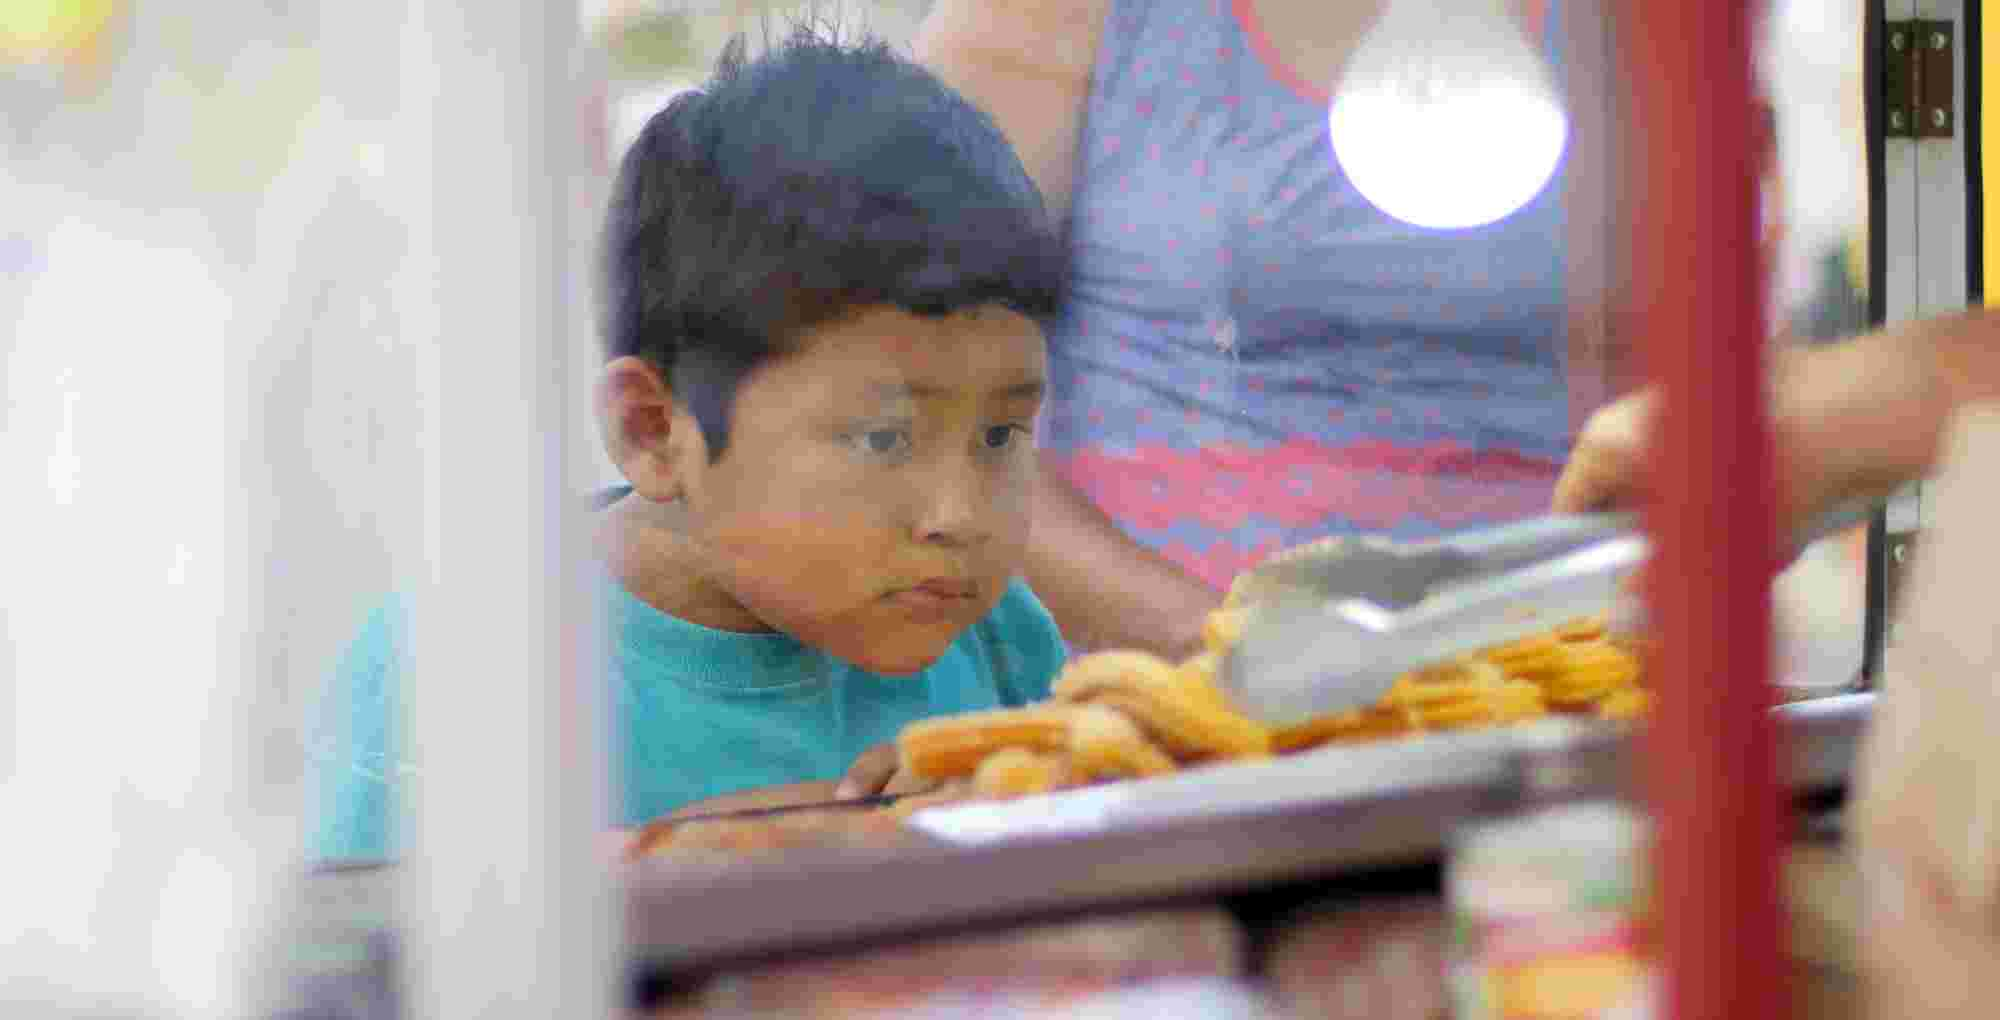 Boy waiting for Churros, CSW